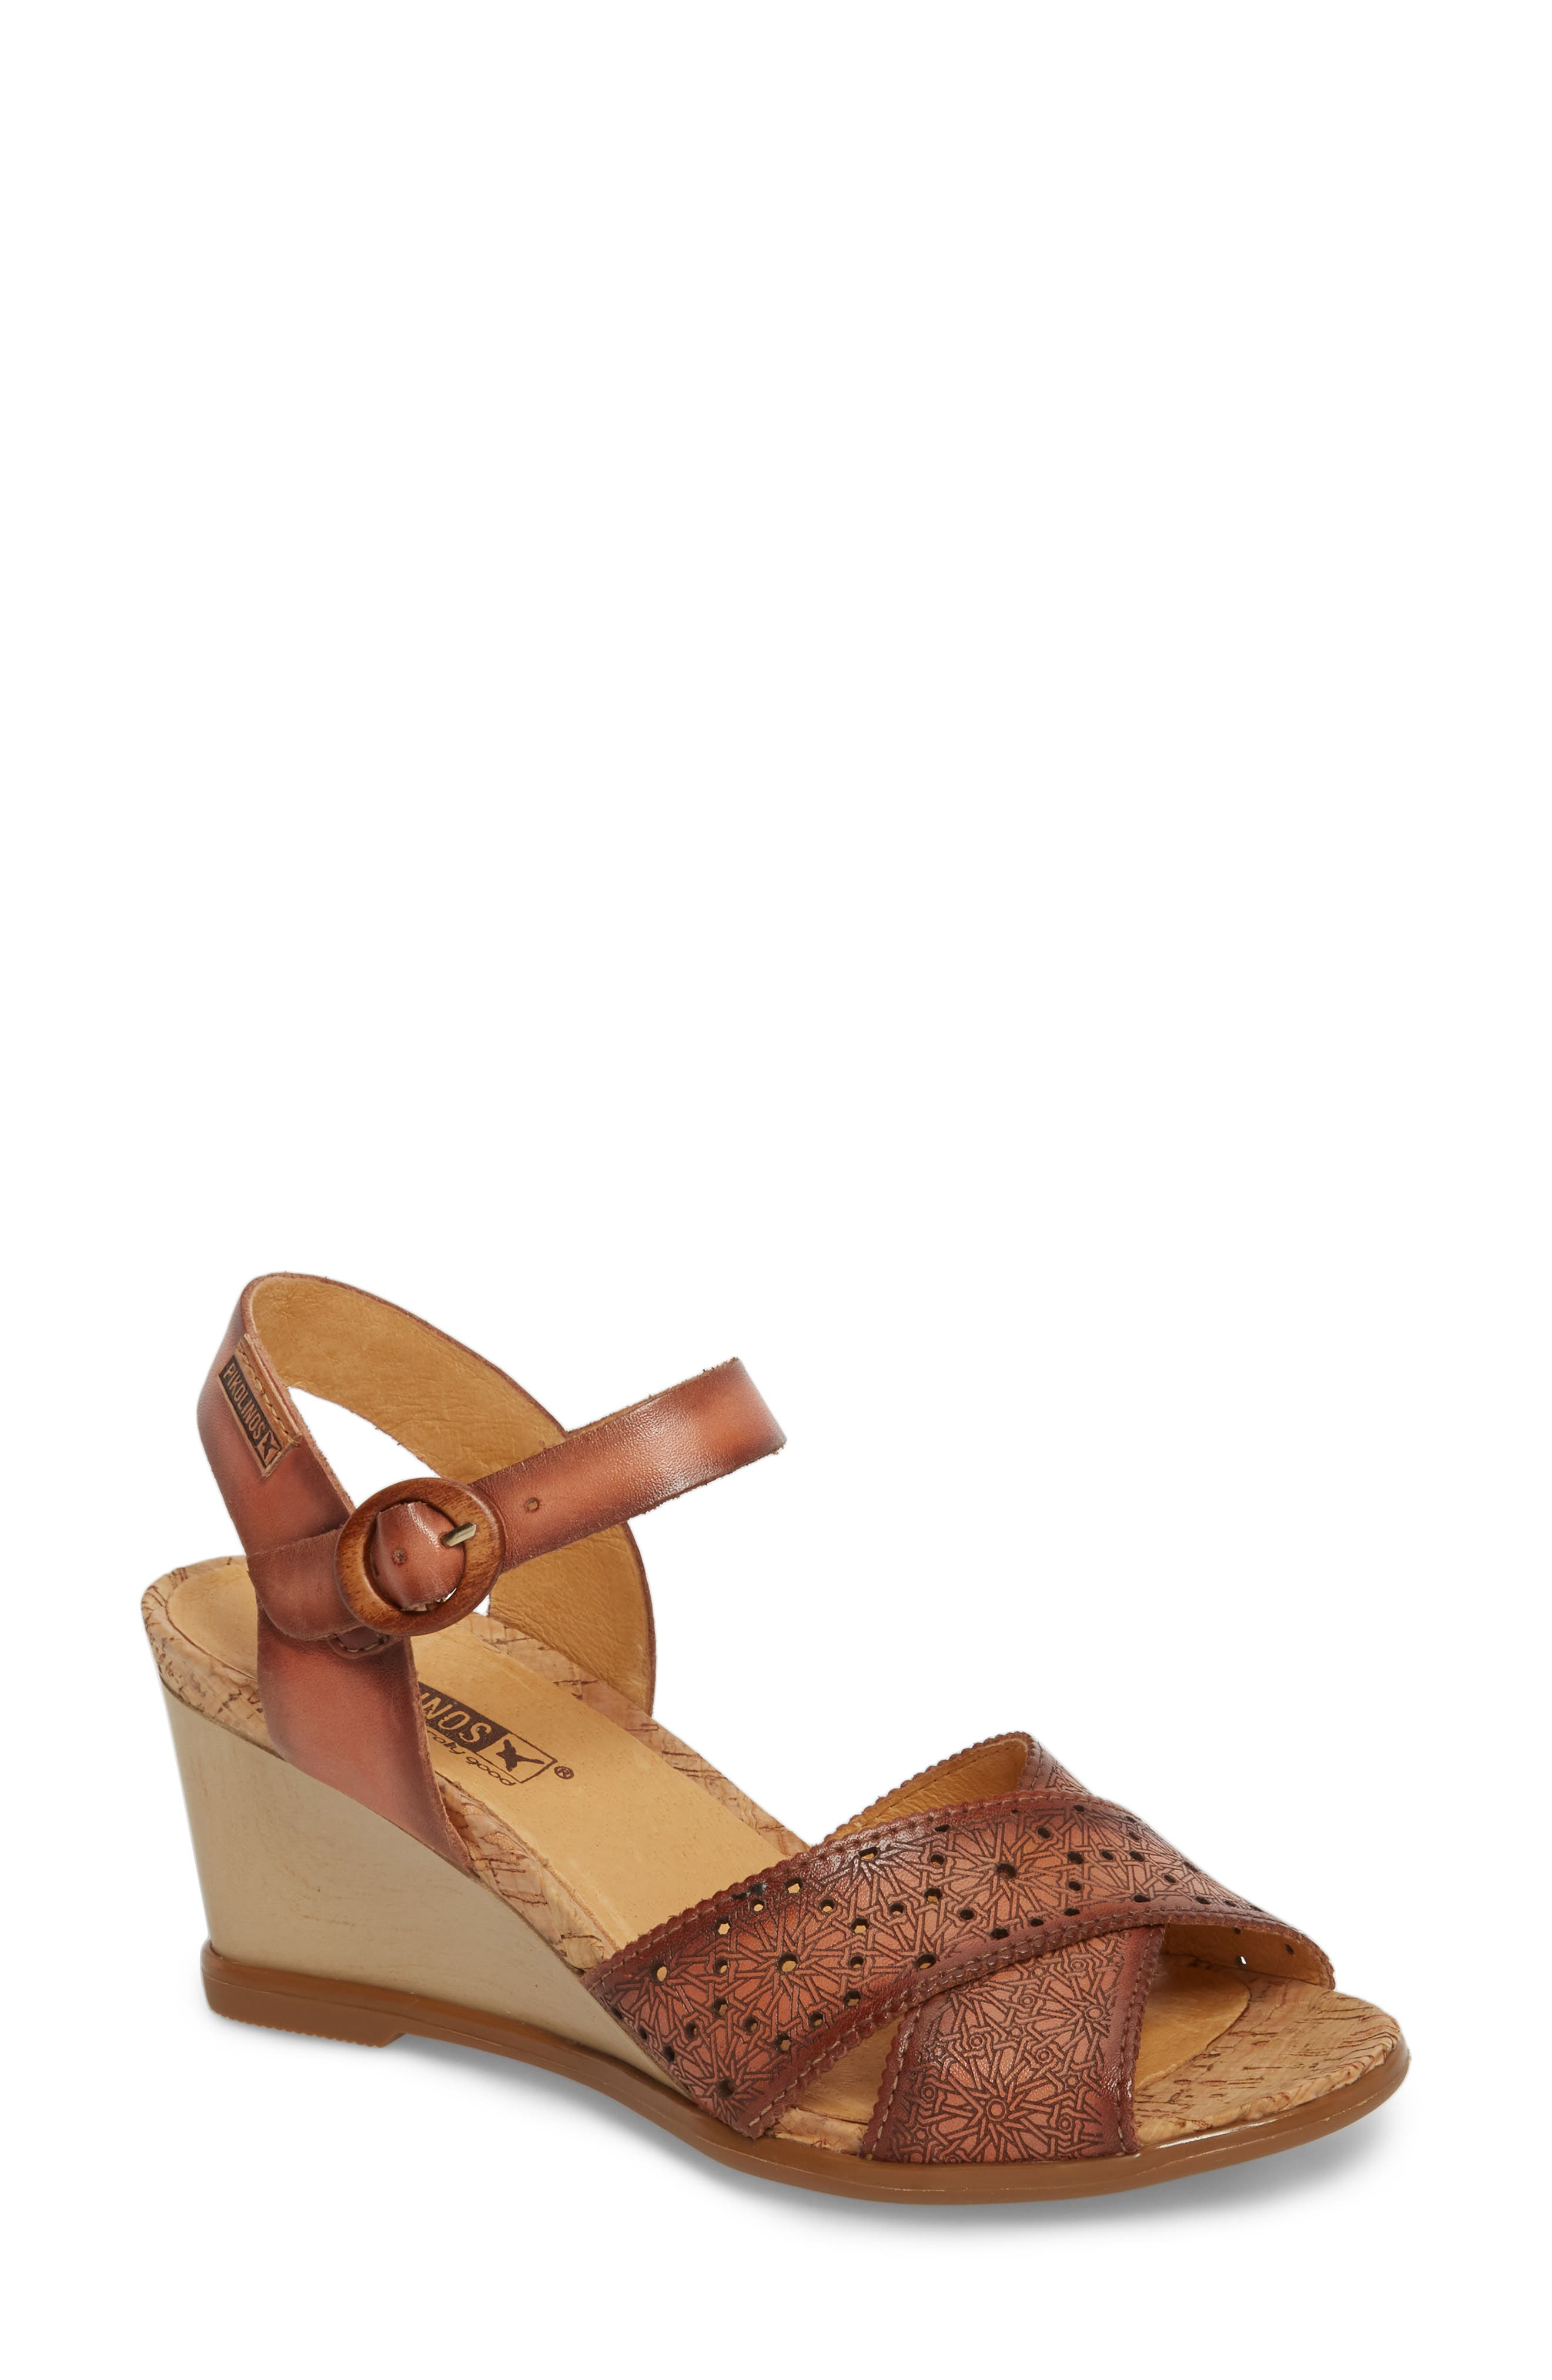 Vigo Wedge Sandal,                             Main thumbnail 1, color,                             FLAMINGO LEATHER